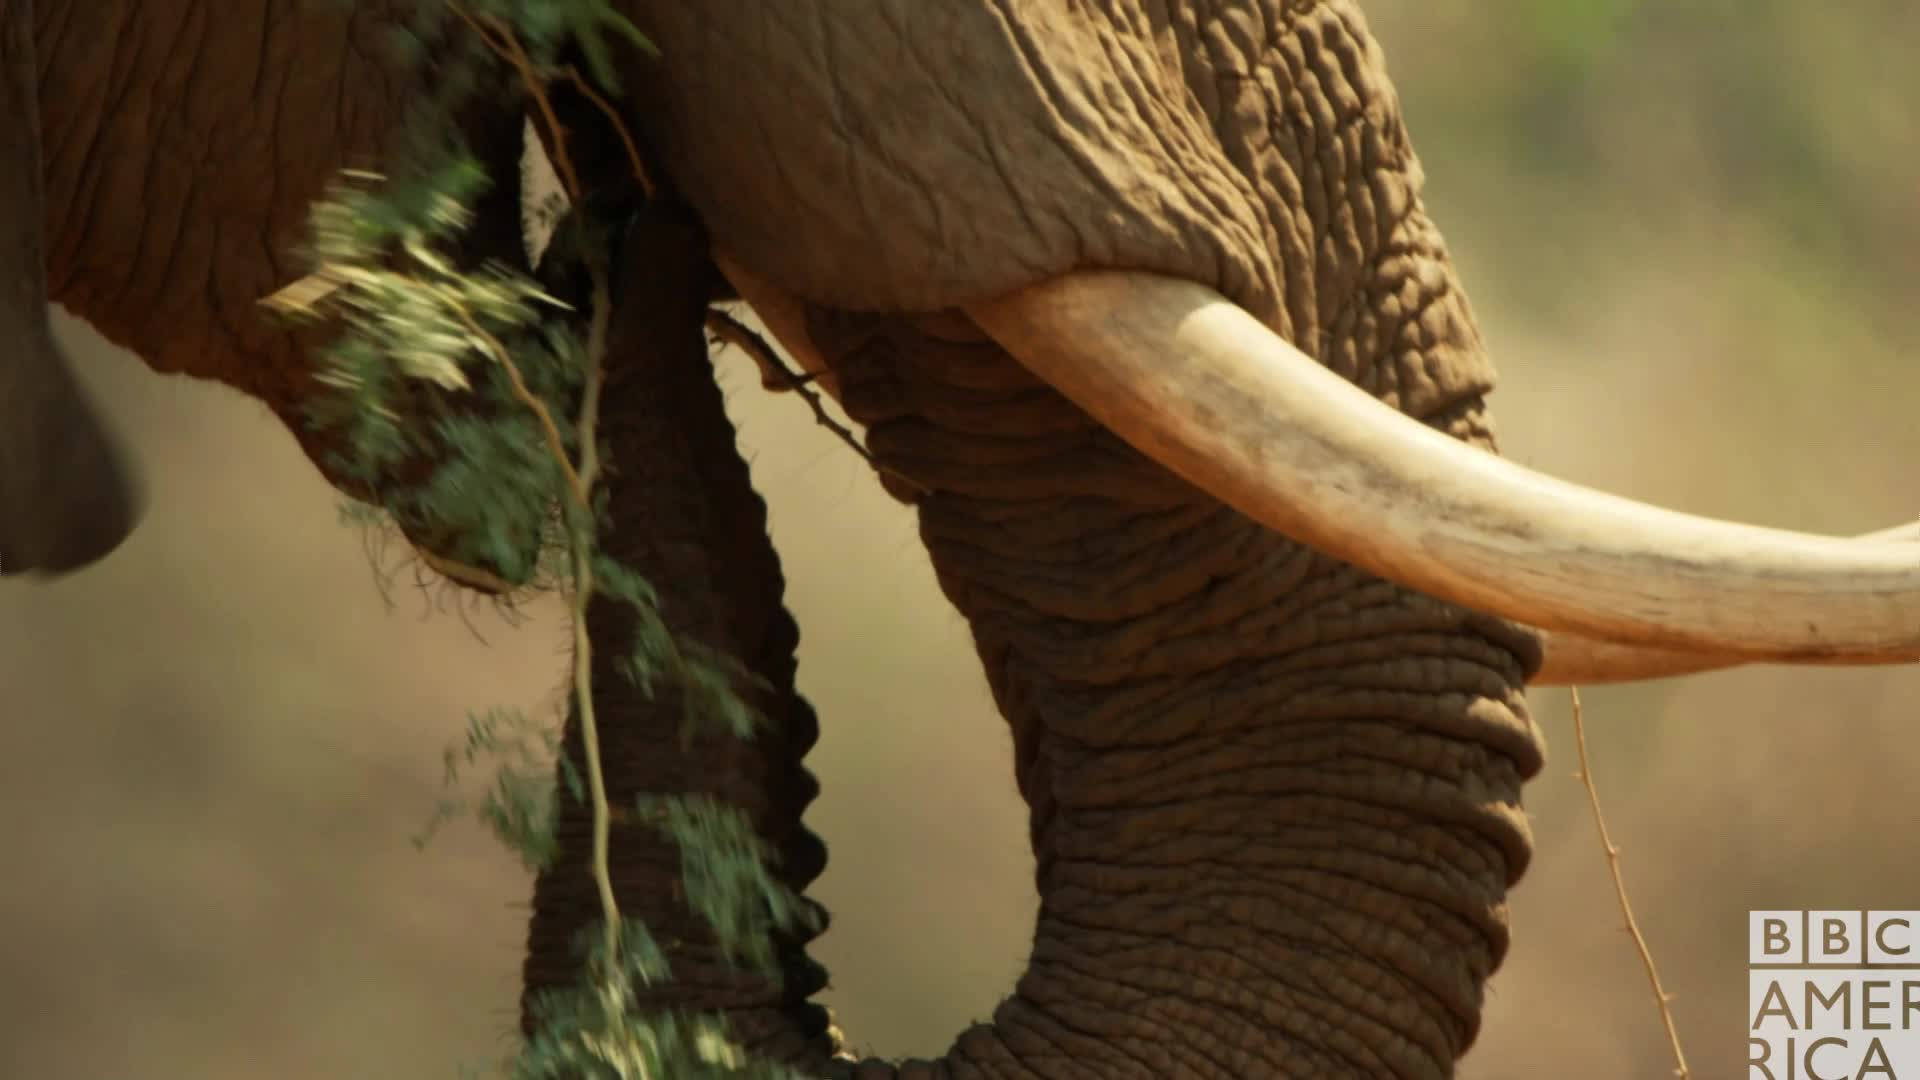 animal, animals, bbc america, bbc america dynasties, bbc america: dynasties, dynasties, eating, elephant, food, hungry, painted wolf, painted wolves, wolf, wolves, Dynasties Hungry Elephant GIFs